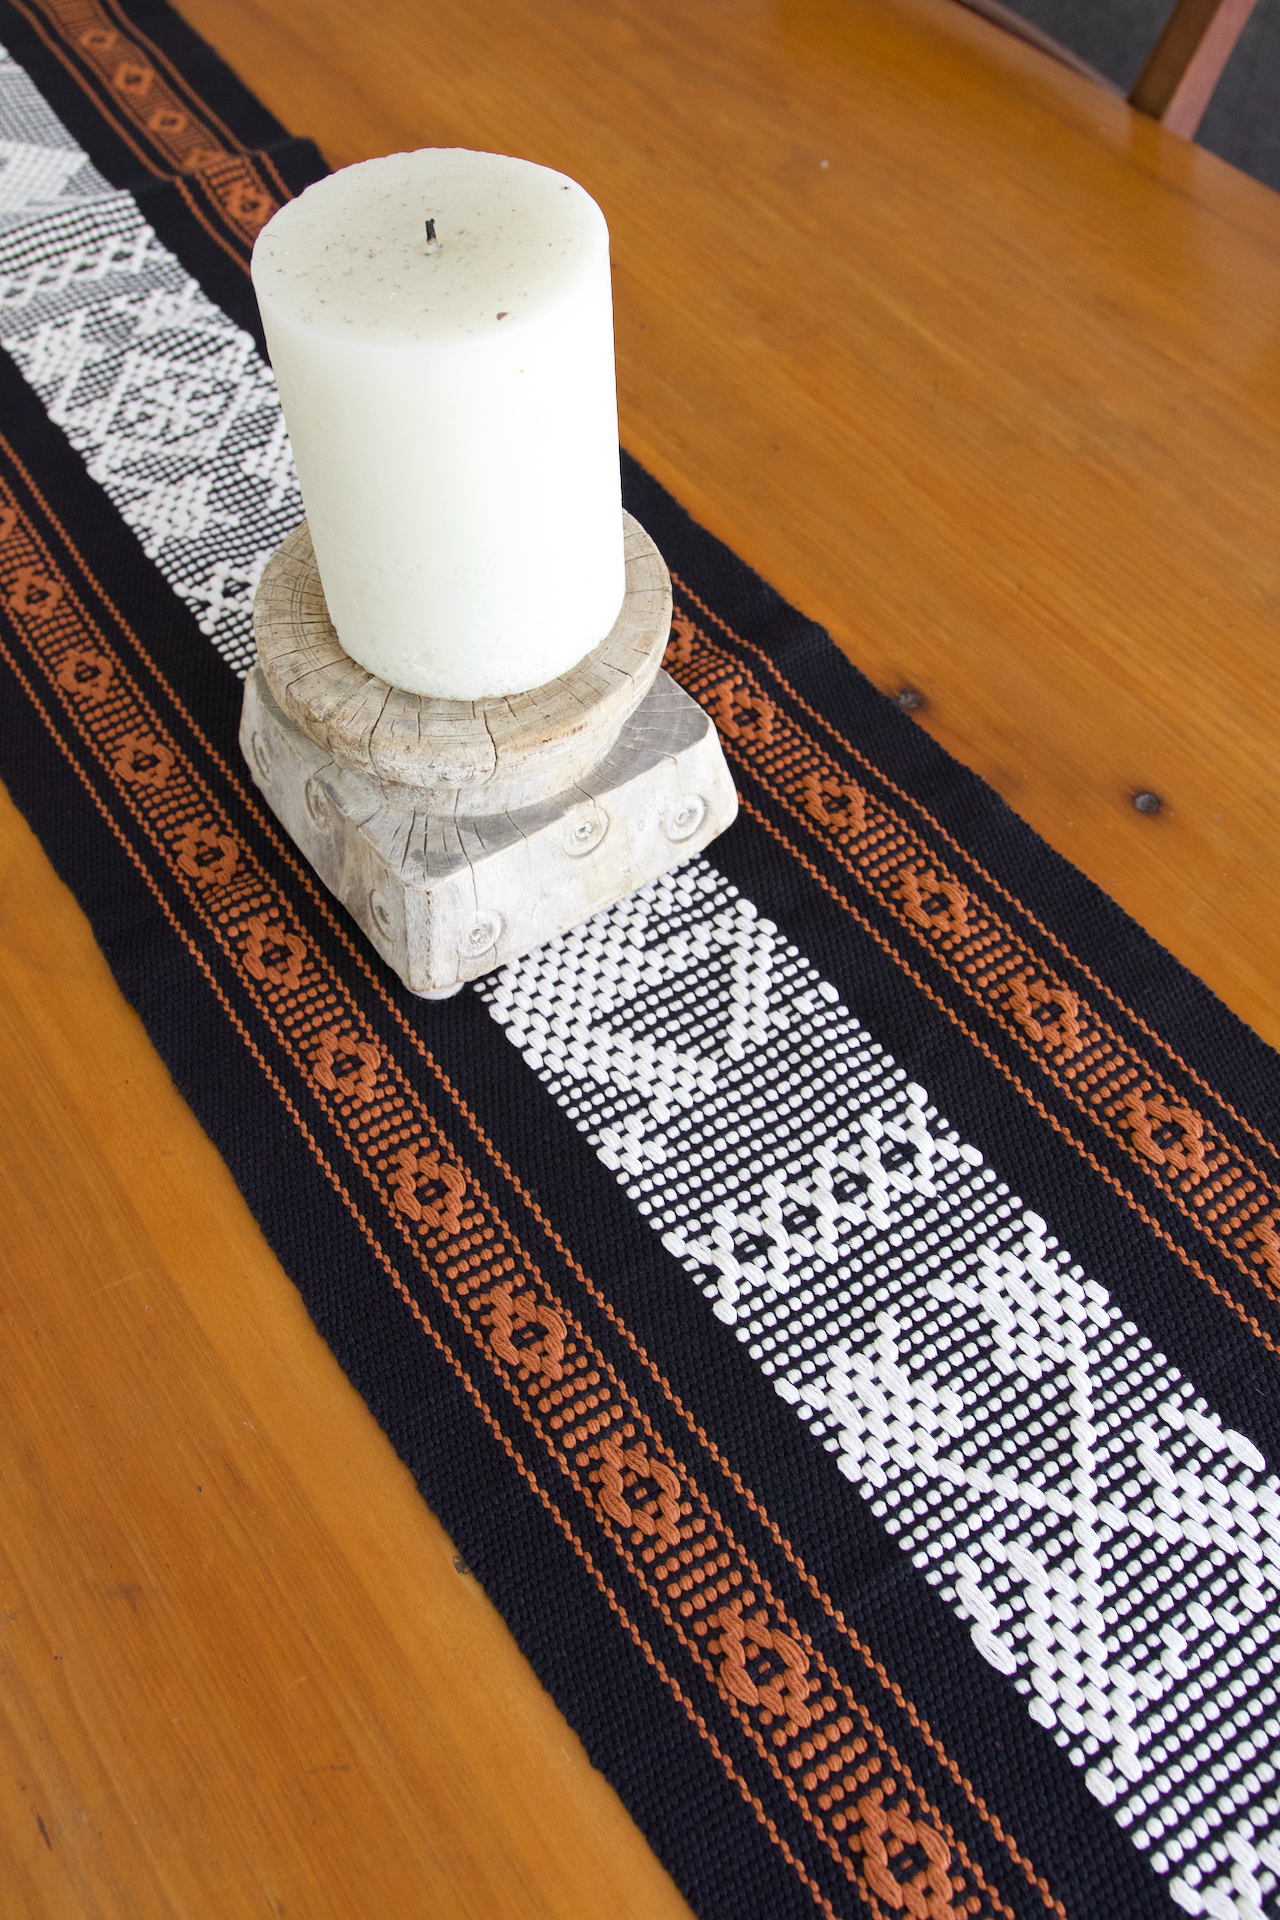 Jalieza Table Runner - Small - Black